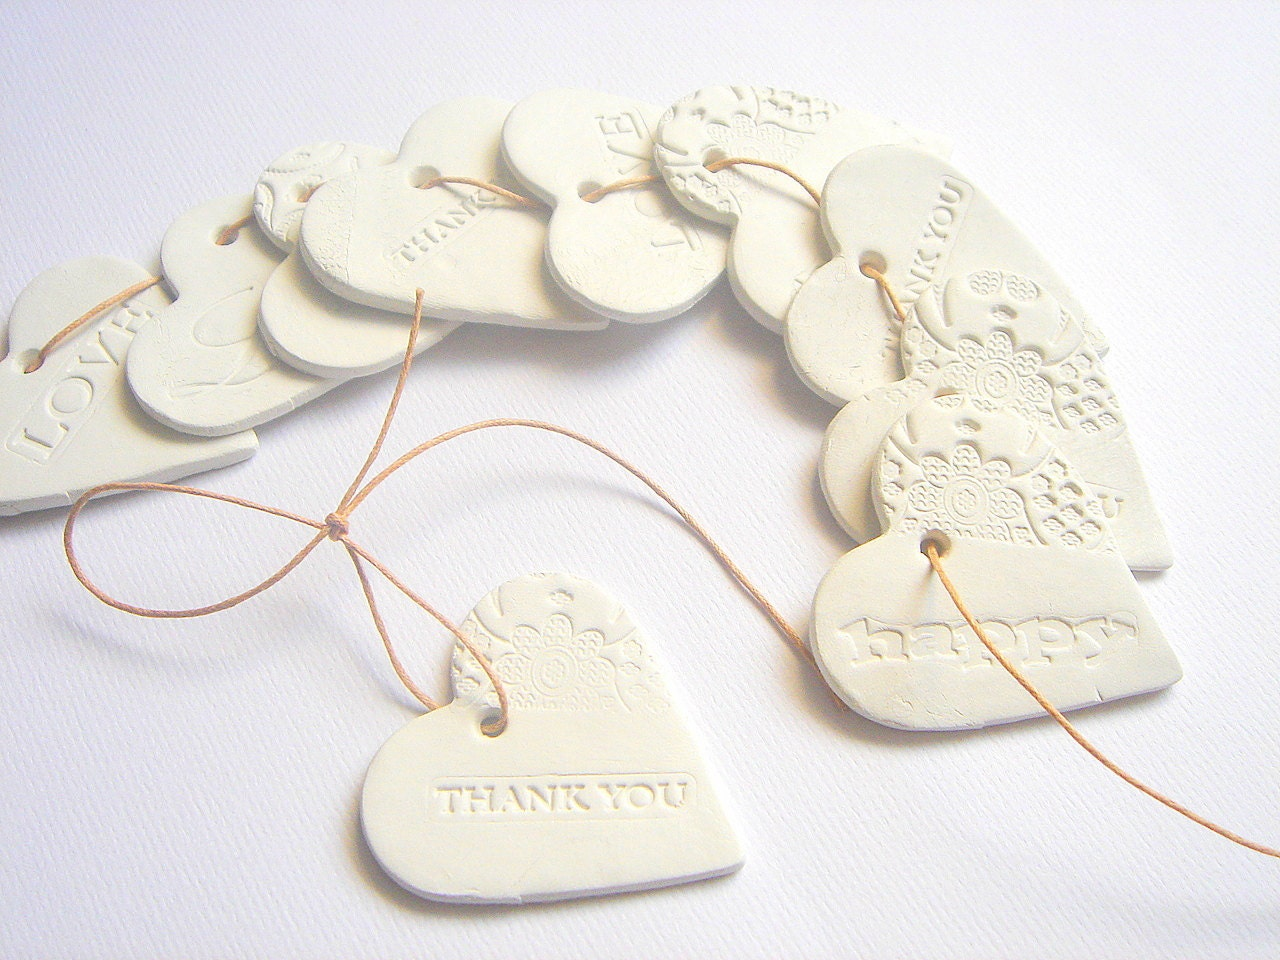 10 Ceramic Gift Tag Thank you Tags Wedding Favor Tags